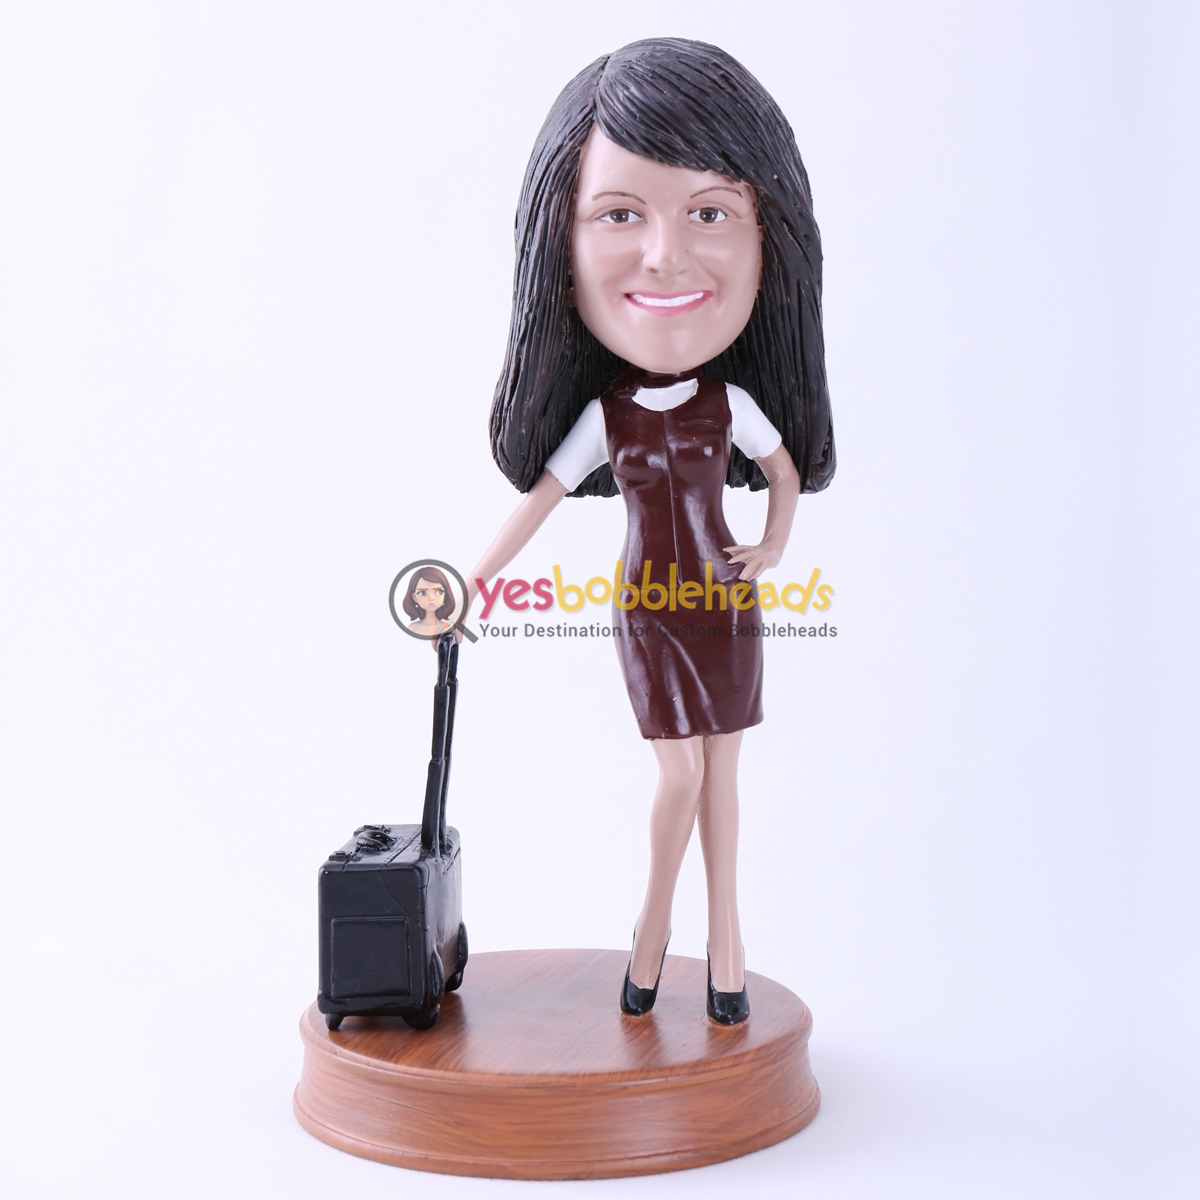 Picture of Custom Bobblehead Doll: Flight Attendant with Case